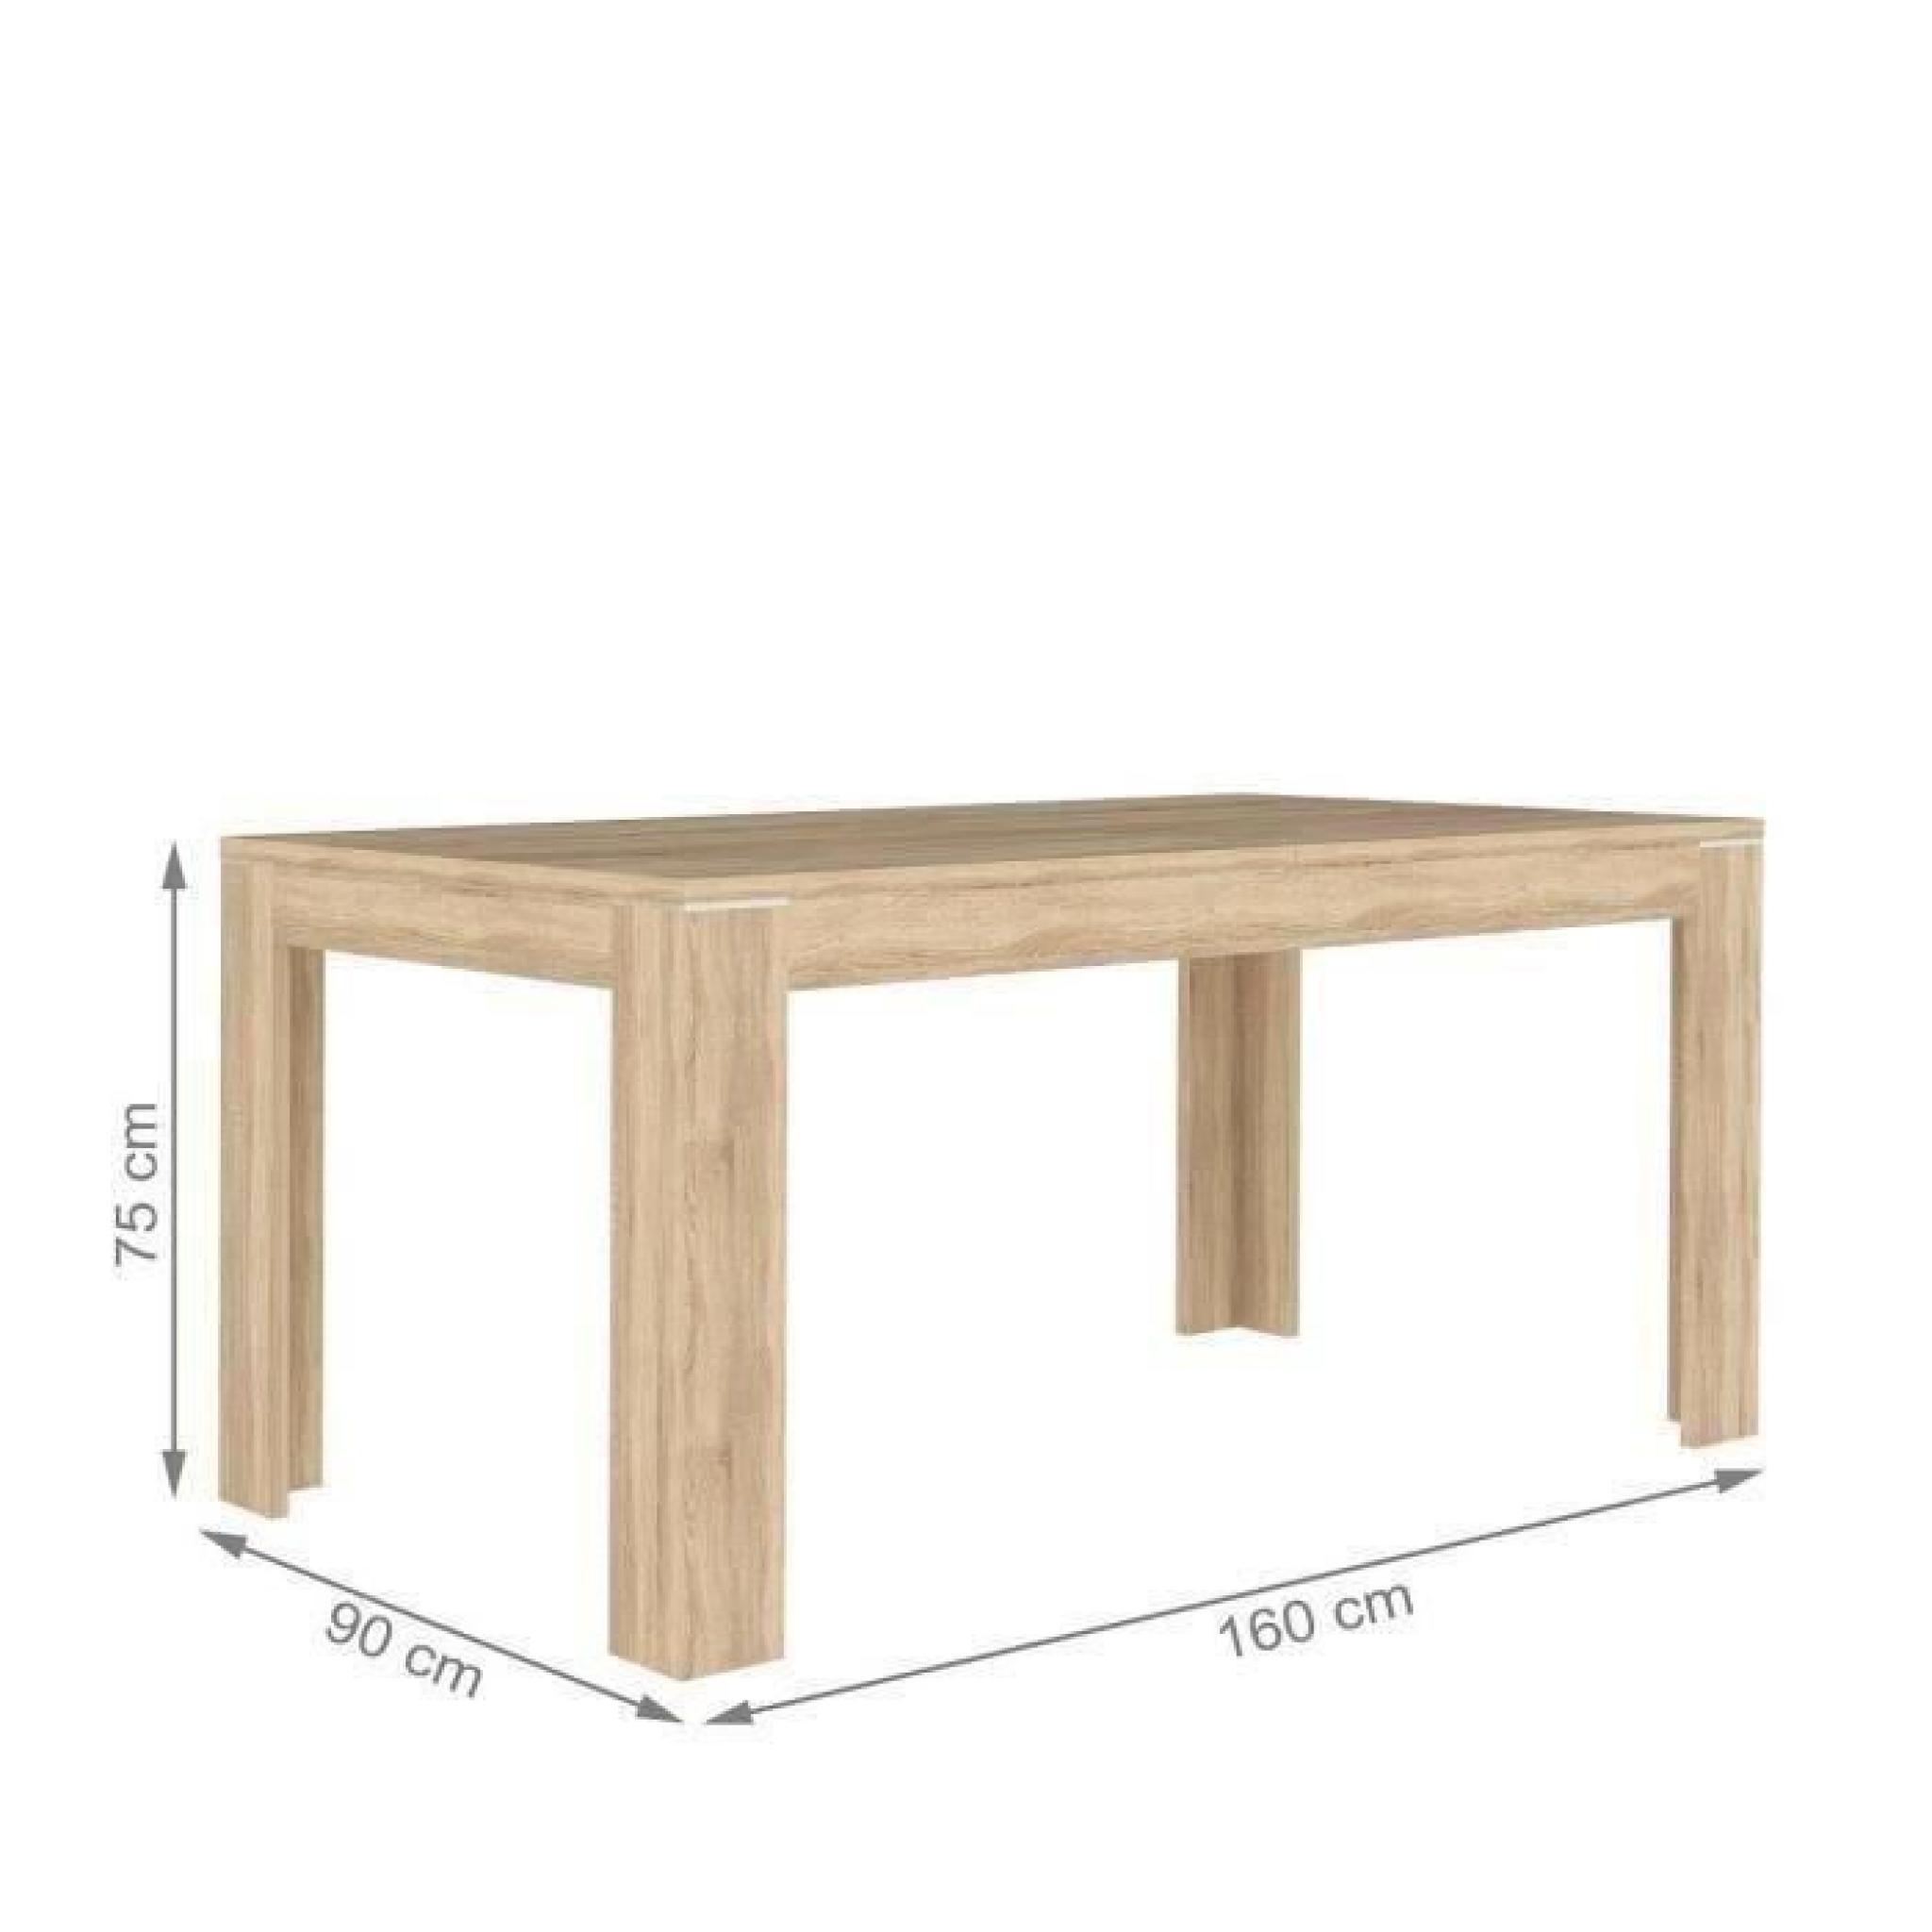 Table salle a manger extensible pas cher maison design for Table a manger rabattable